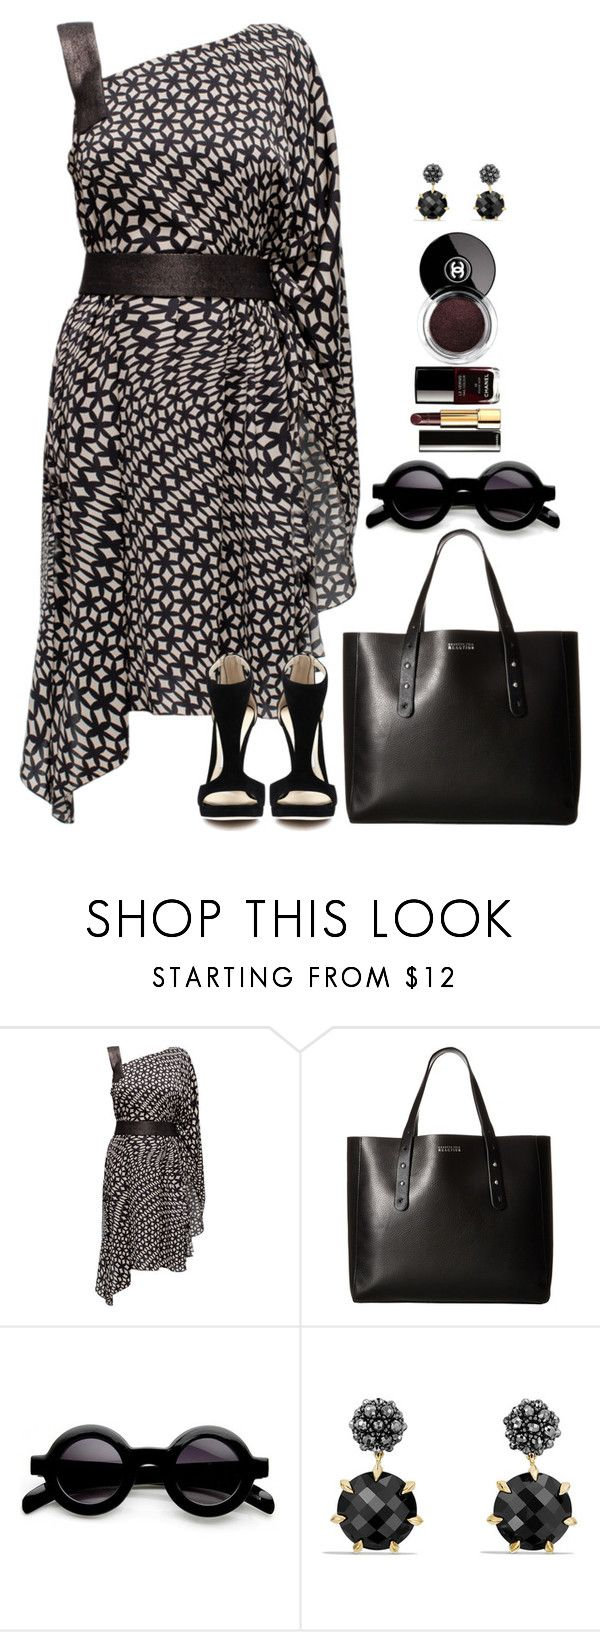 """Untitled #6846"" by lisa-holt ❤ liked on Polyvore featuring Lattori, Kenneth Cole Reaction and David Yurman"